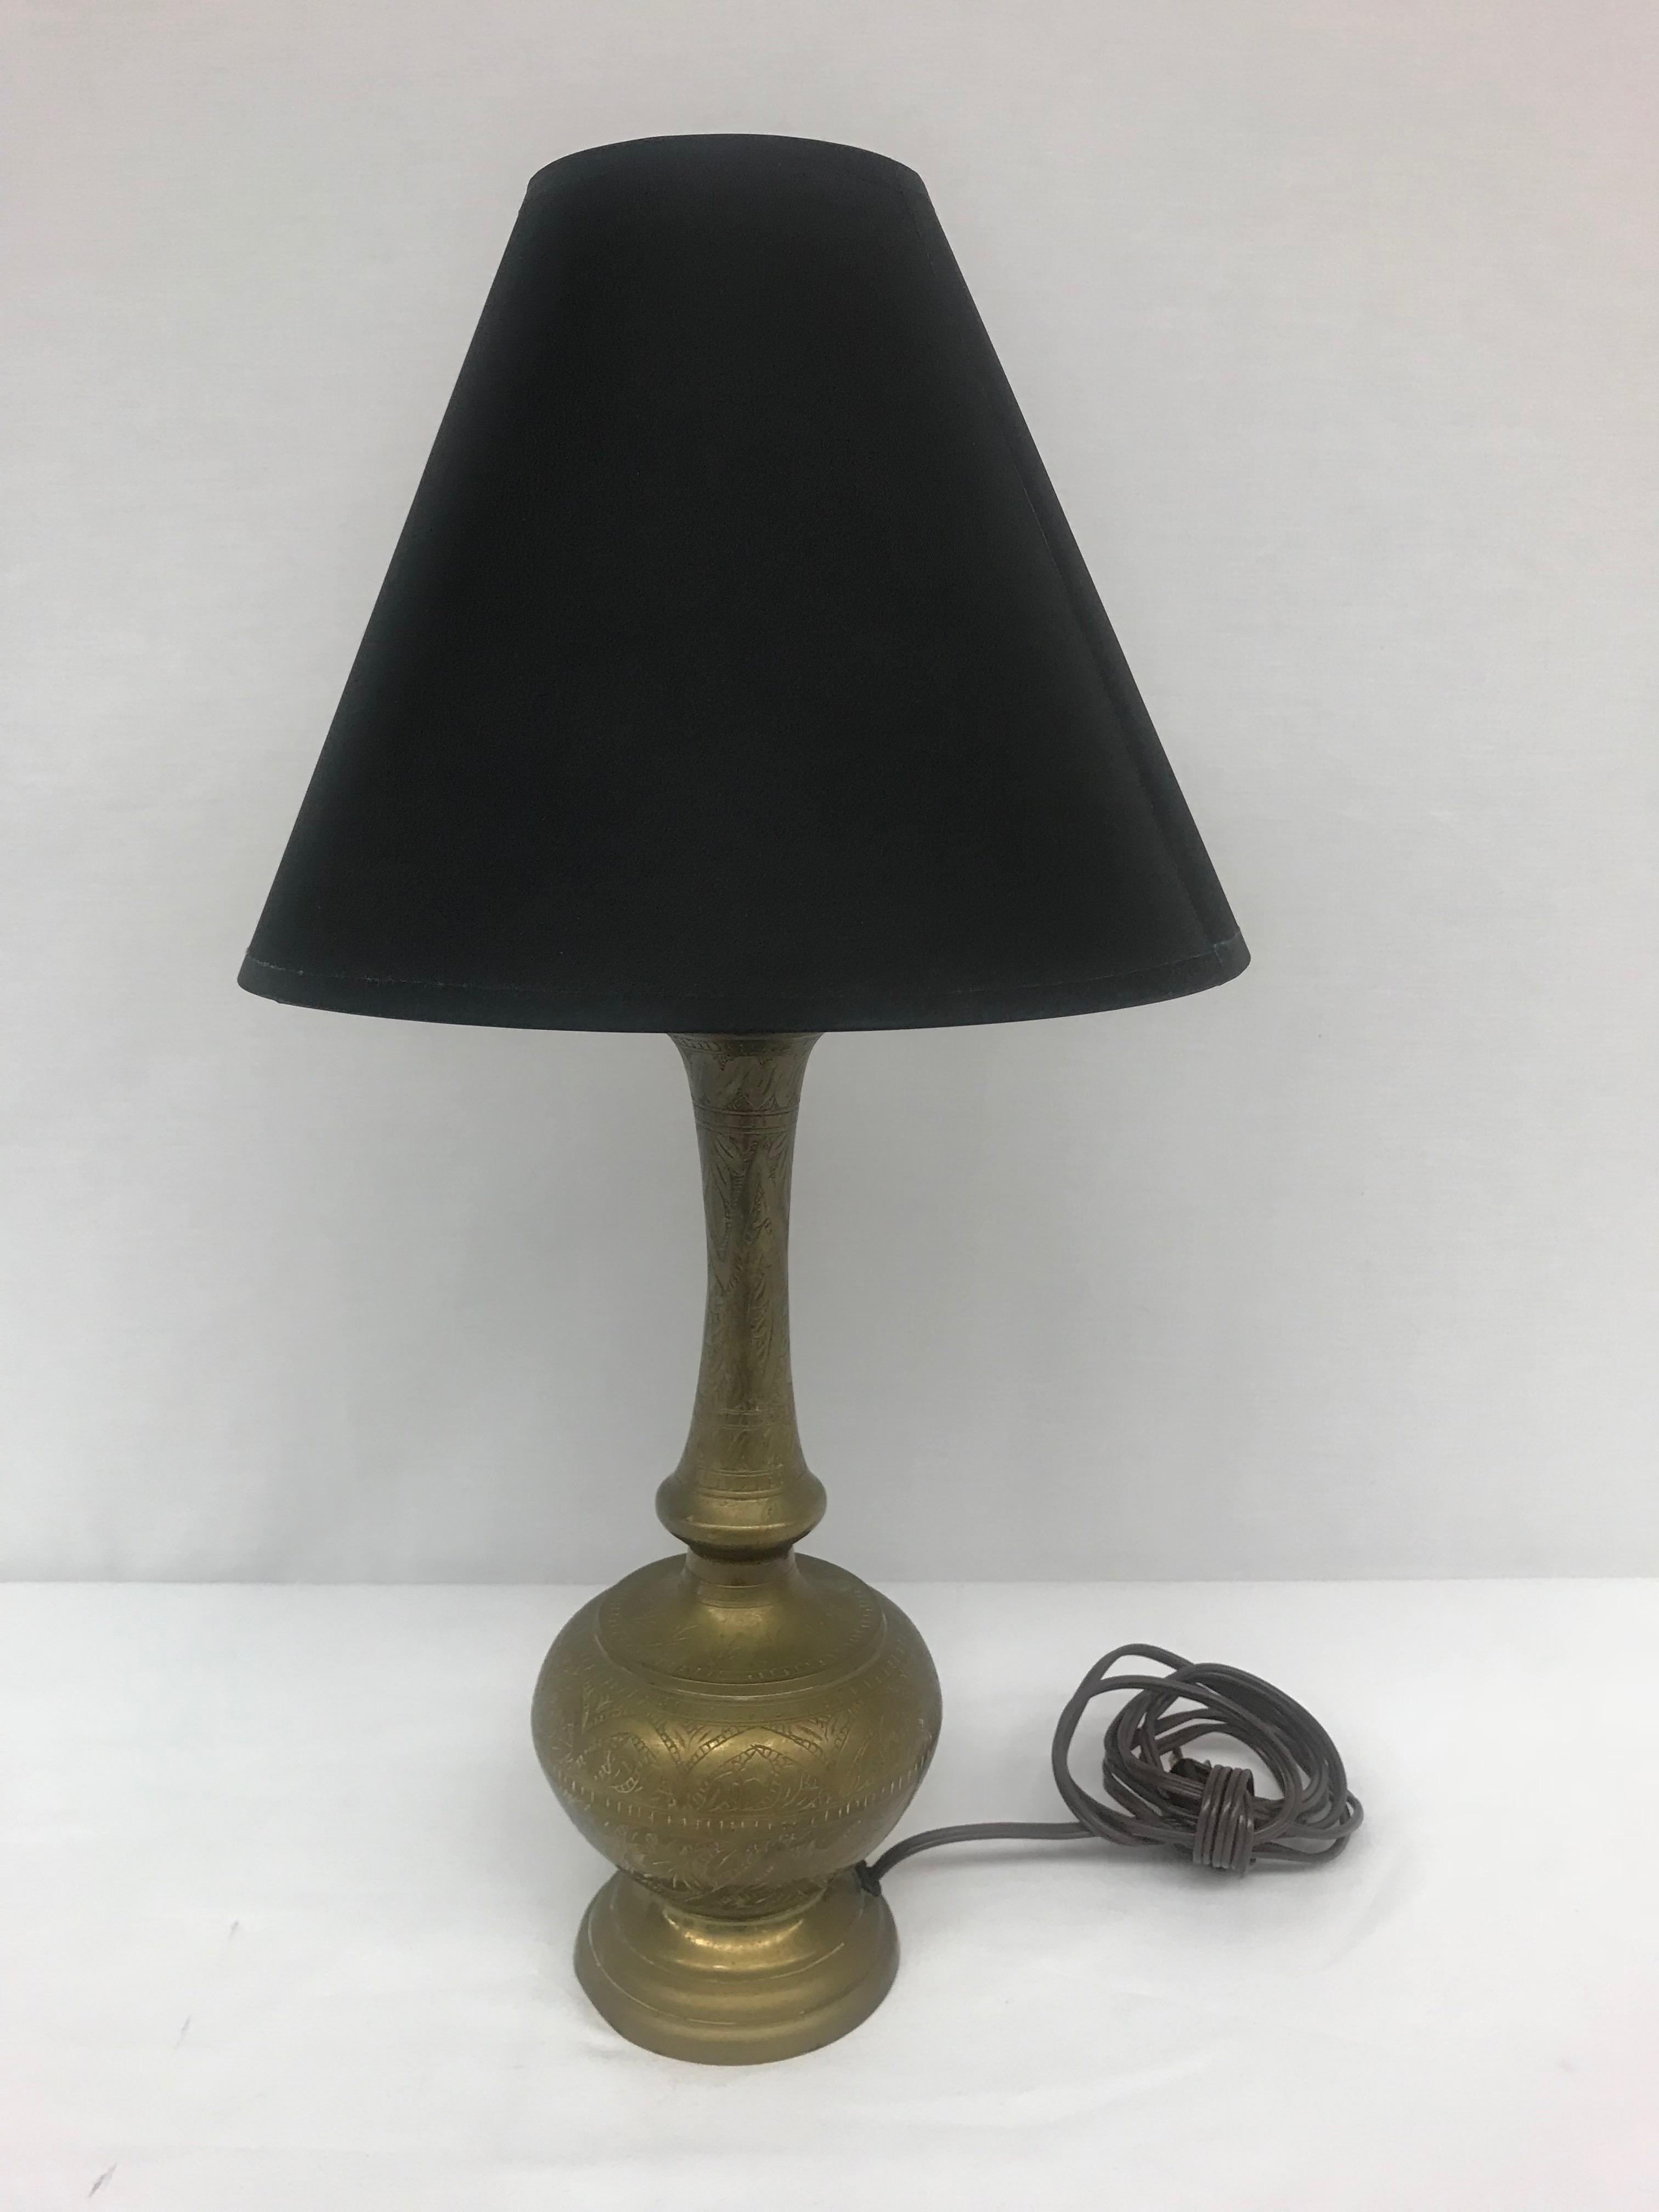 Turkish Brass Bottle Shaped Table Lamp With Black Shade Chairish